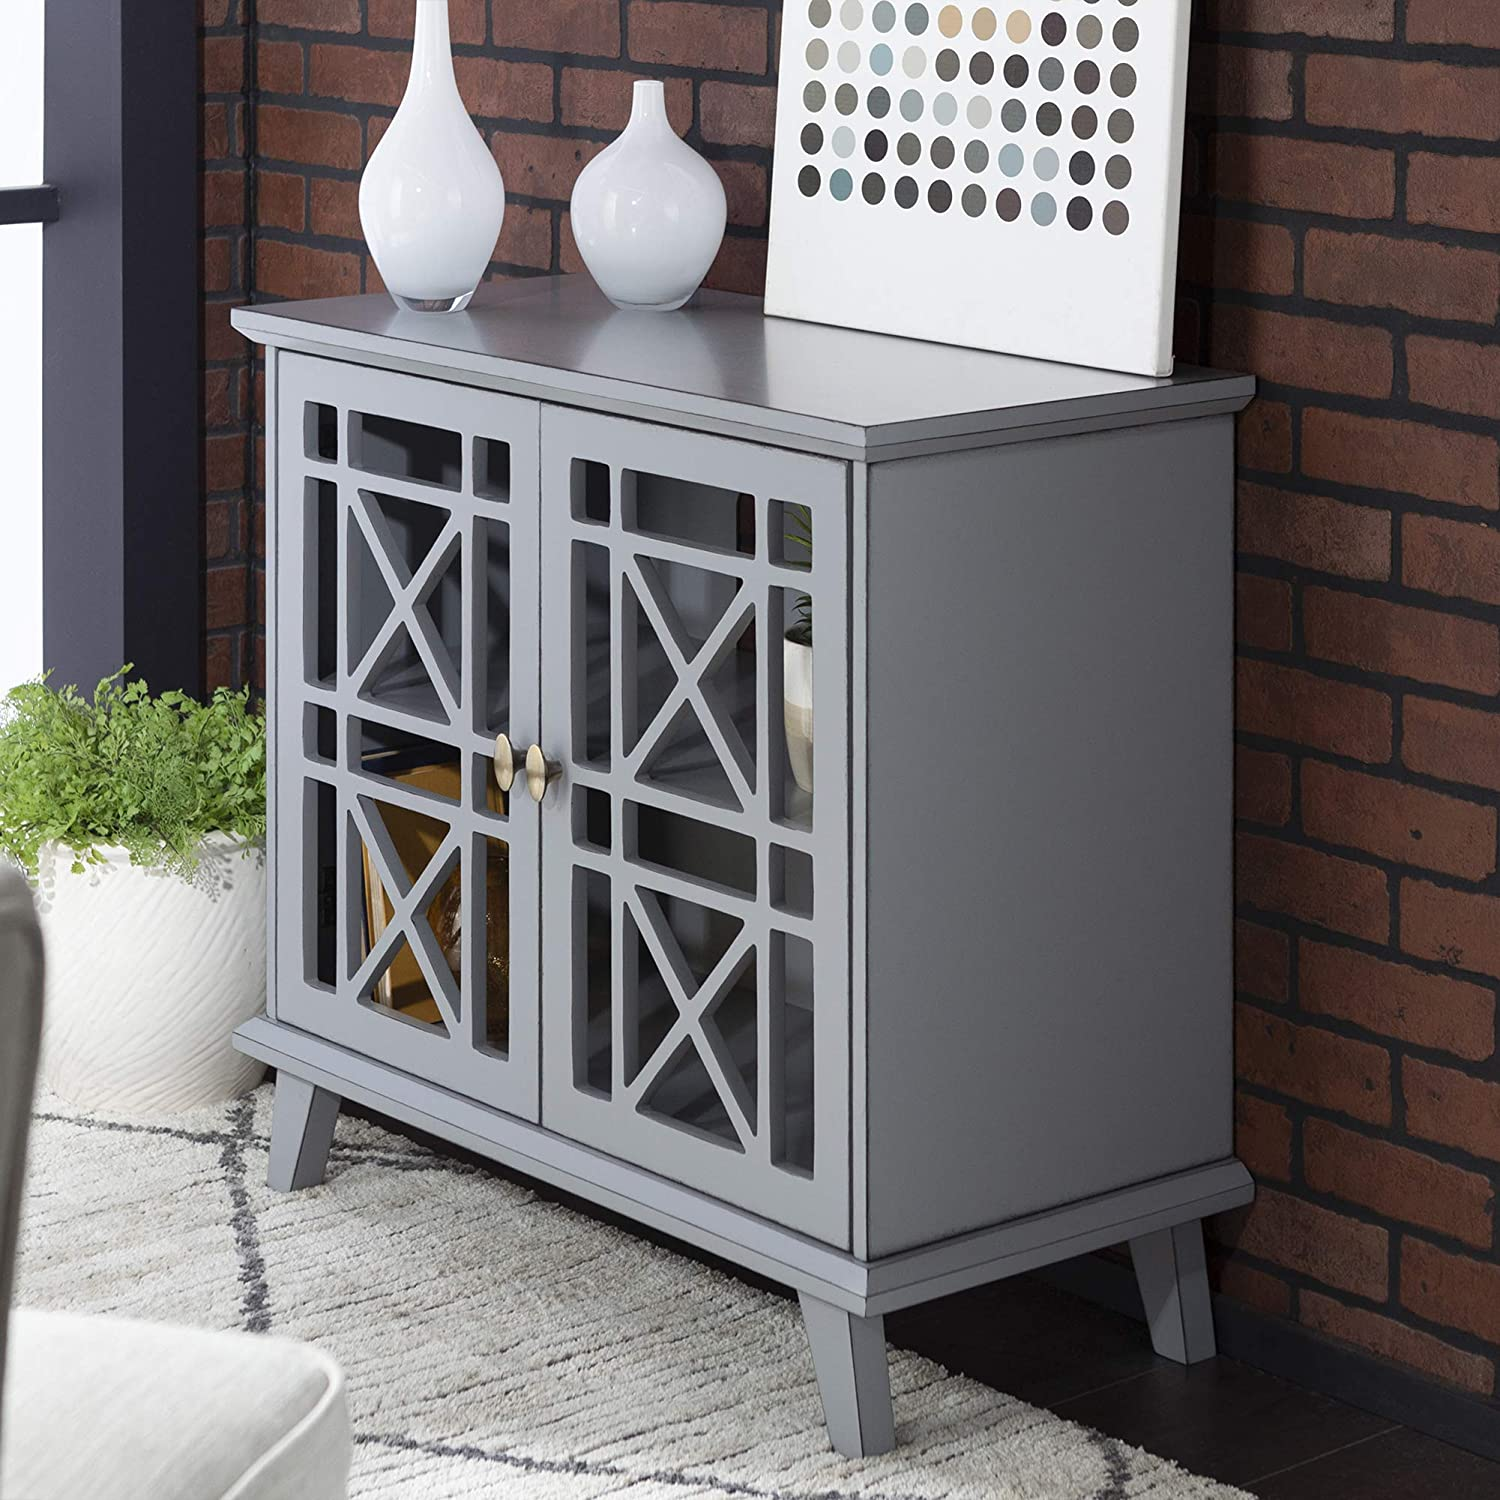 Walker Edison Regular discount Wood Accent Quality inspection Buffet Serving Cabin Sideboard Storage